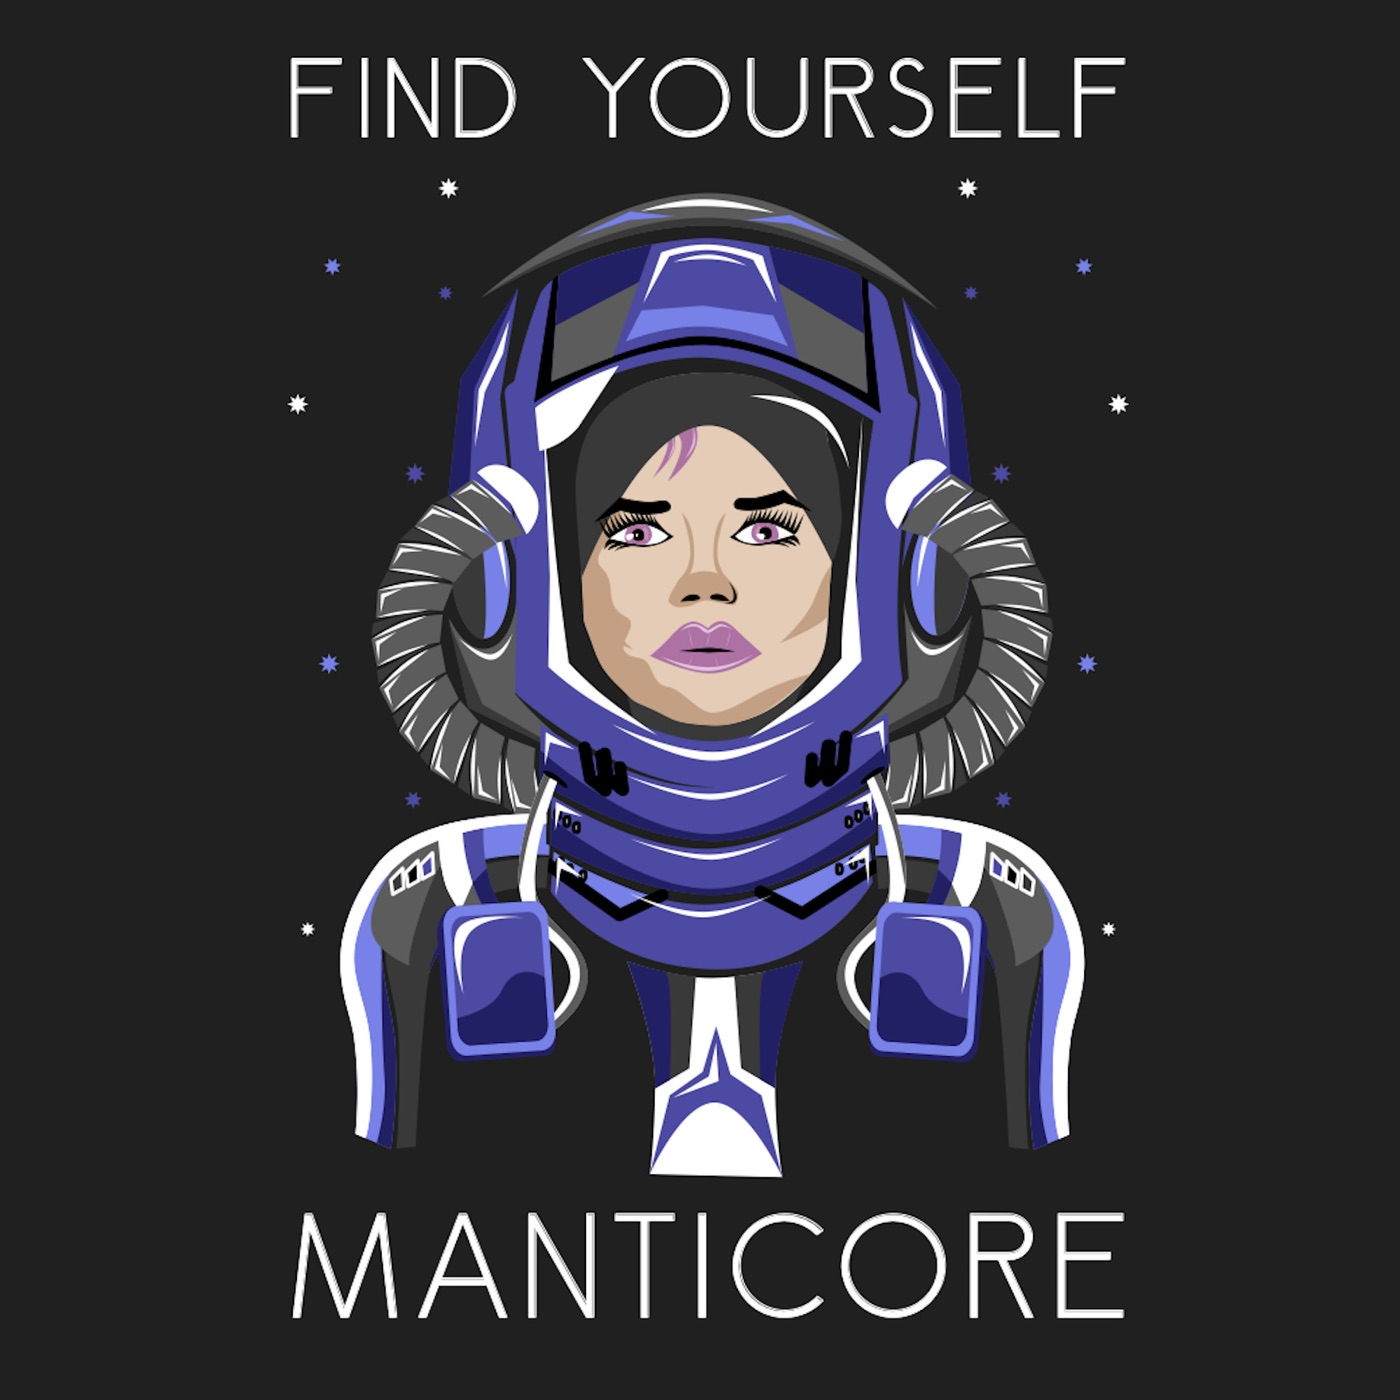 Find Yourself - Manticore [single] (2019)